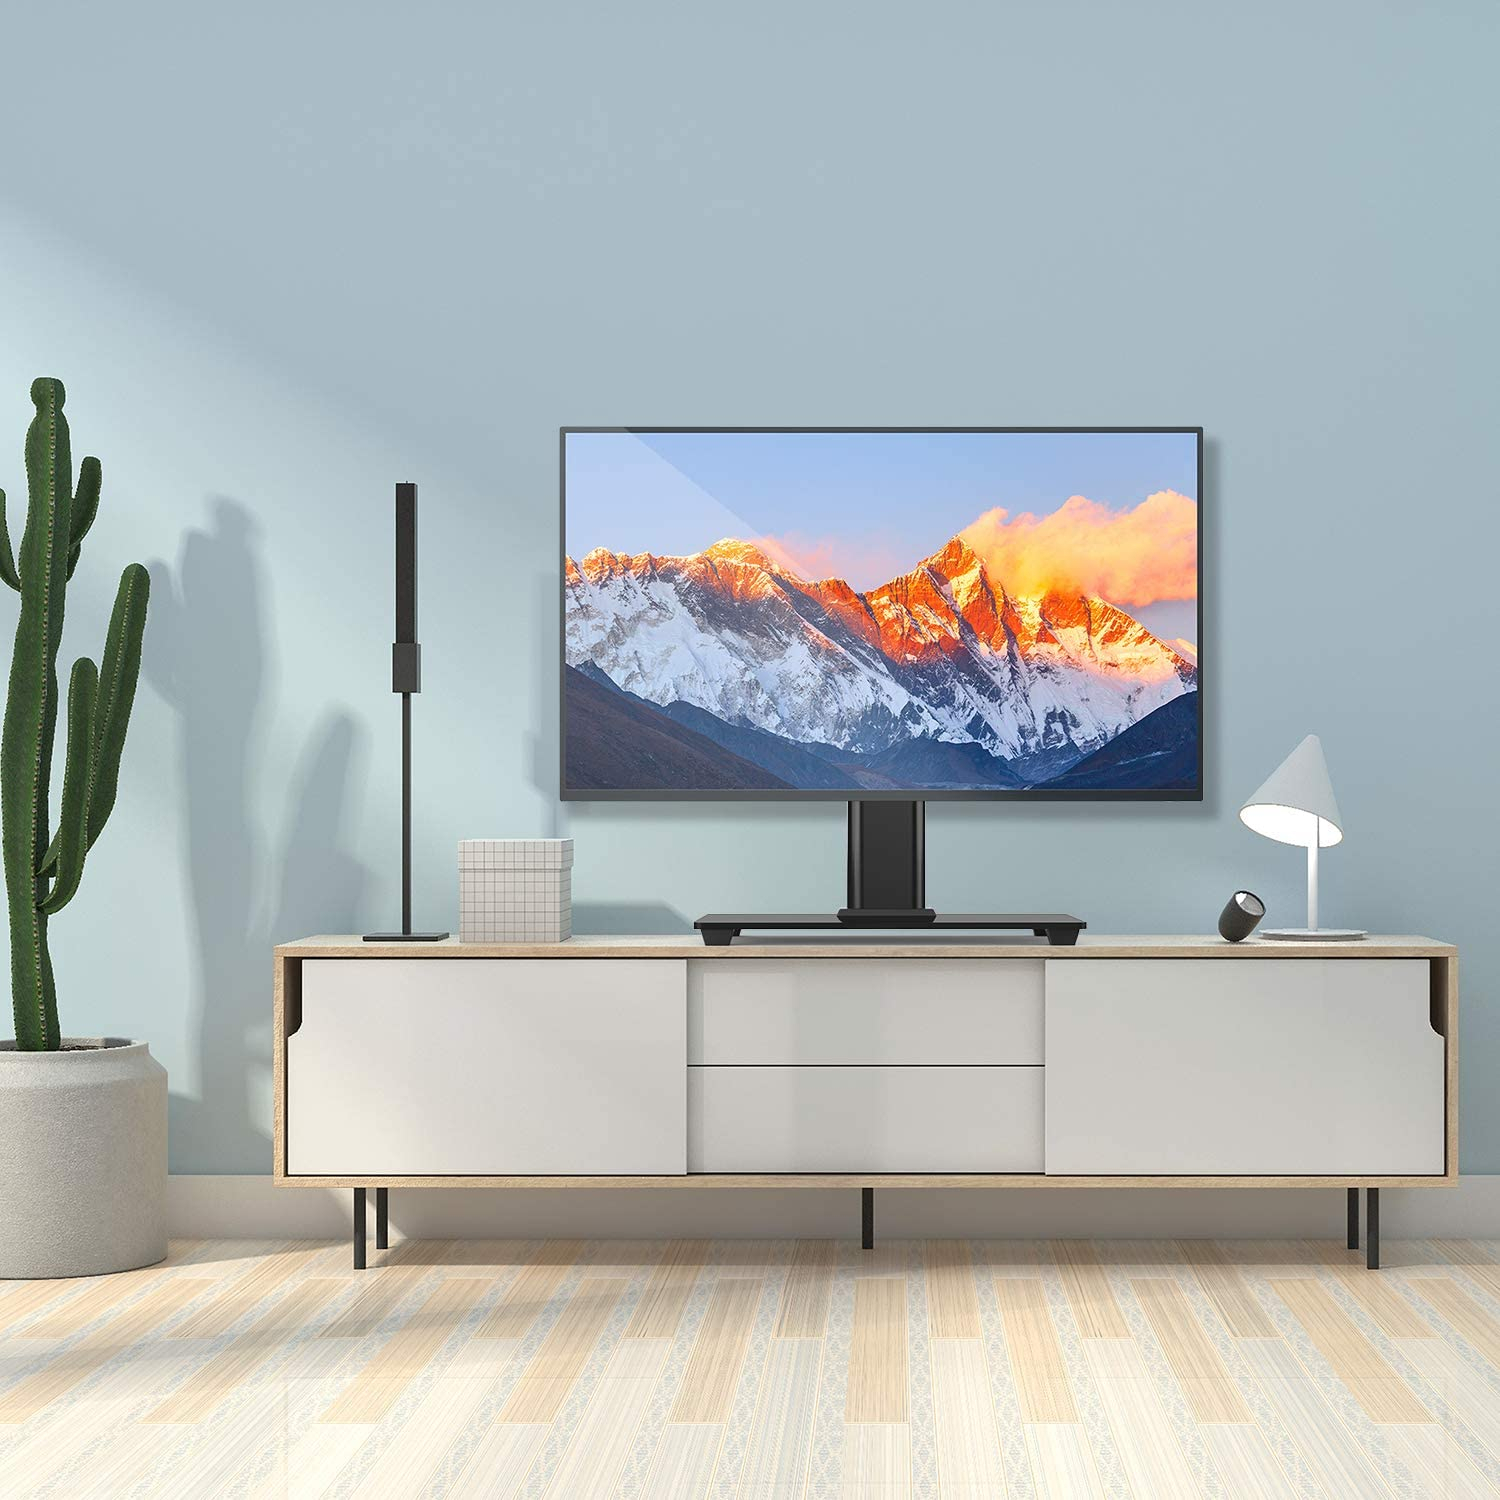 Perlesmith Universal Tv Stand Table Top Tv Stand For 37 55 In Polar Led Tv Stands (View 3 of 15)